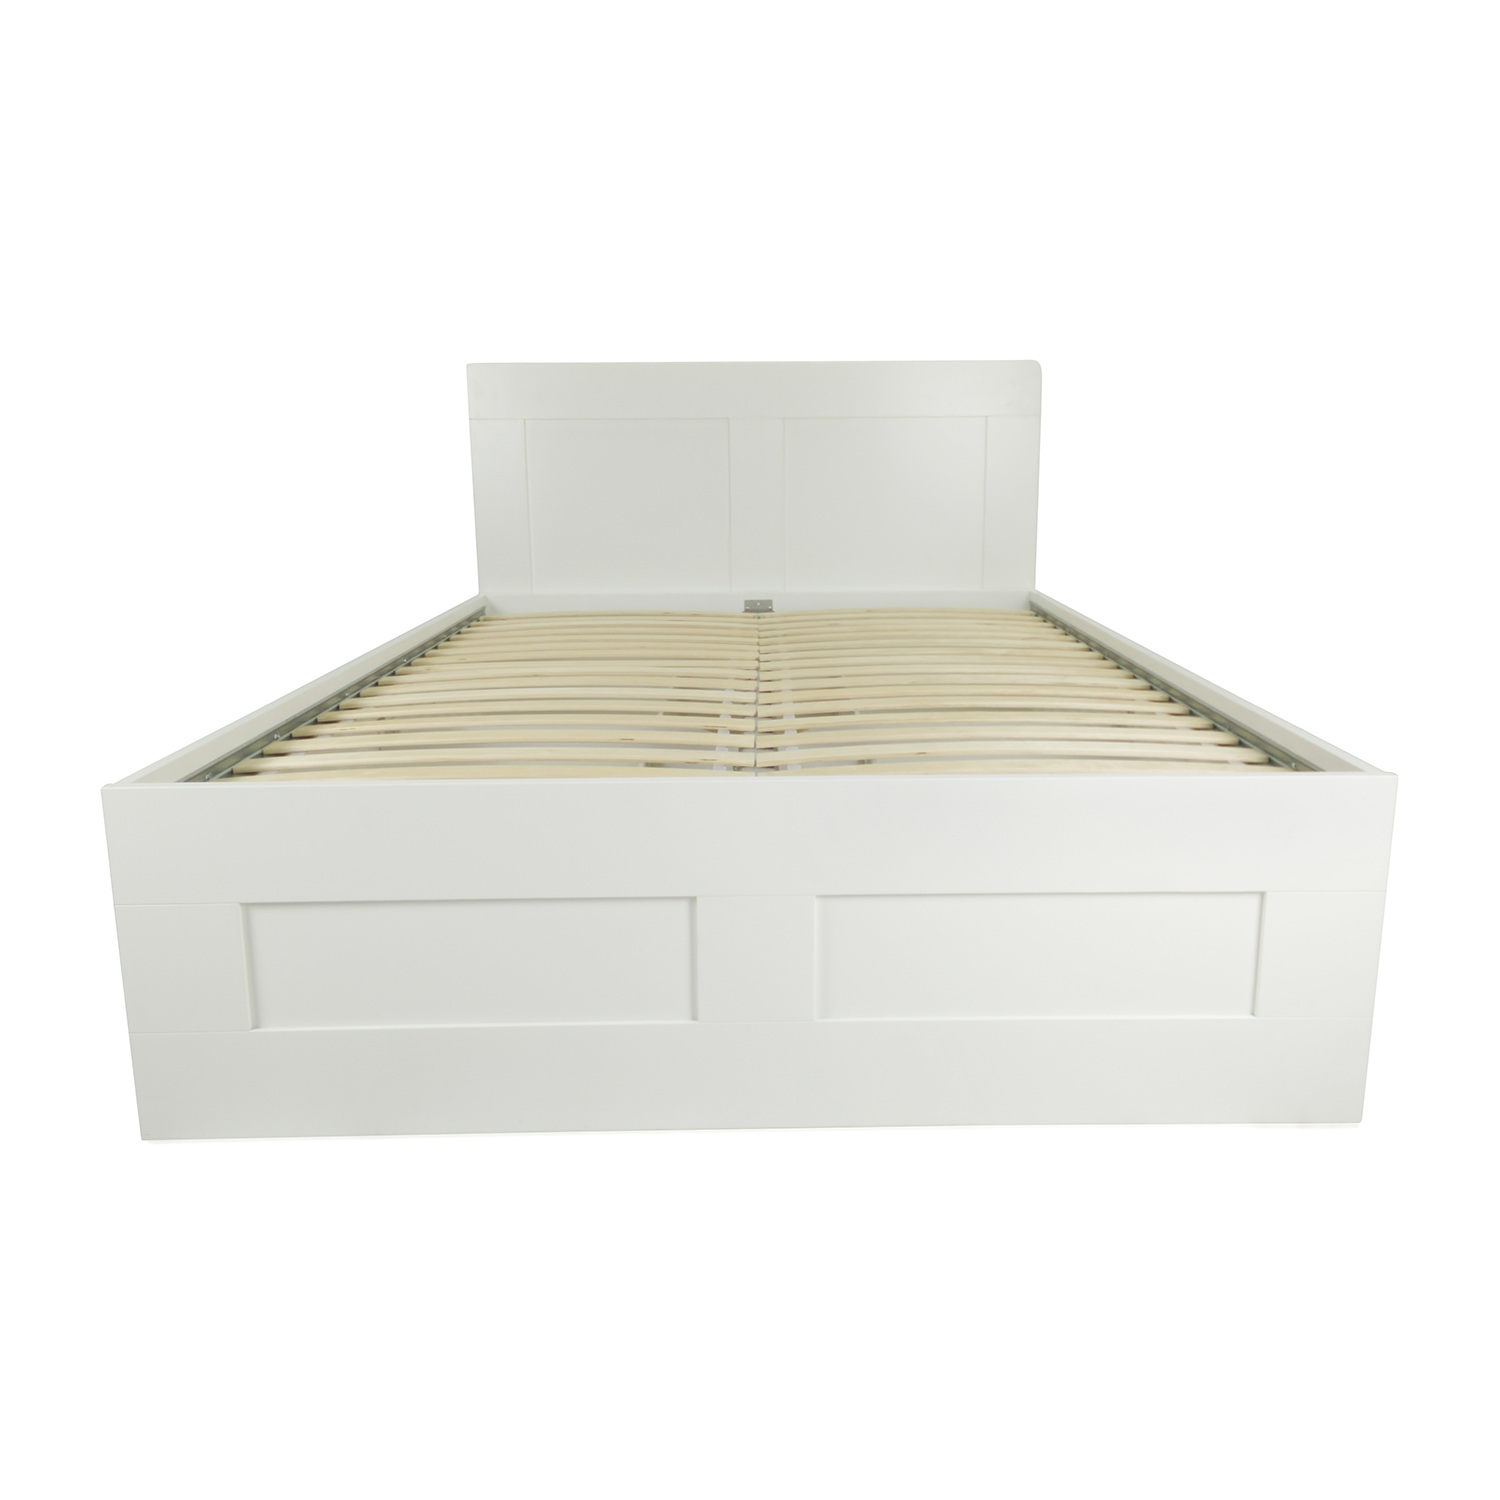 Size Of Queen Bed 57 Off Ikea Ikea Queen Size Bed Frame Beds